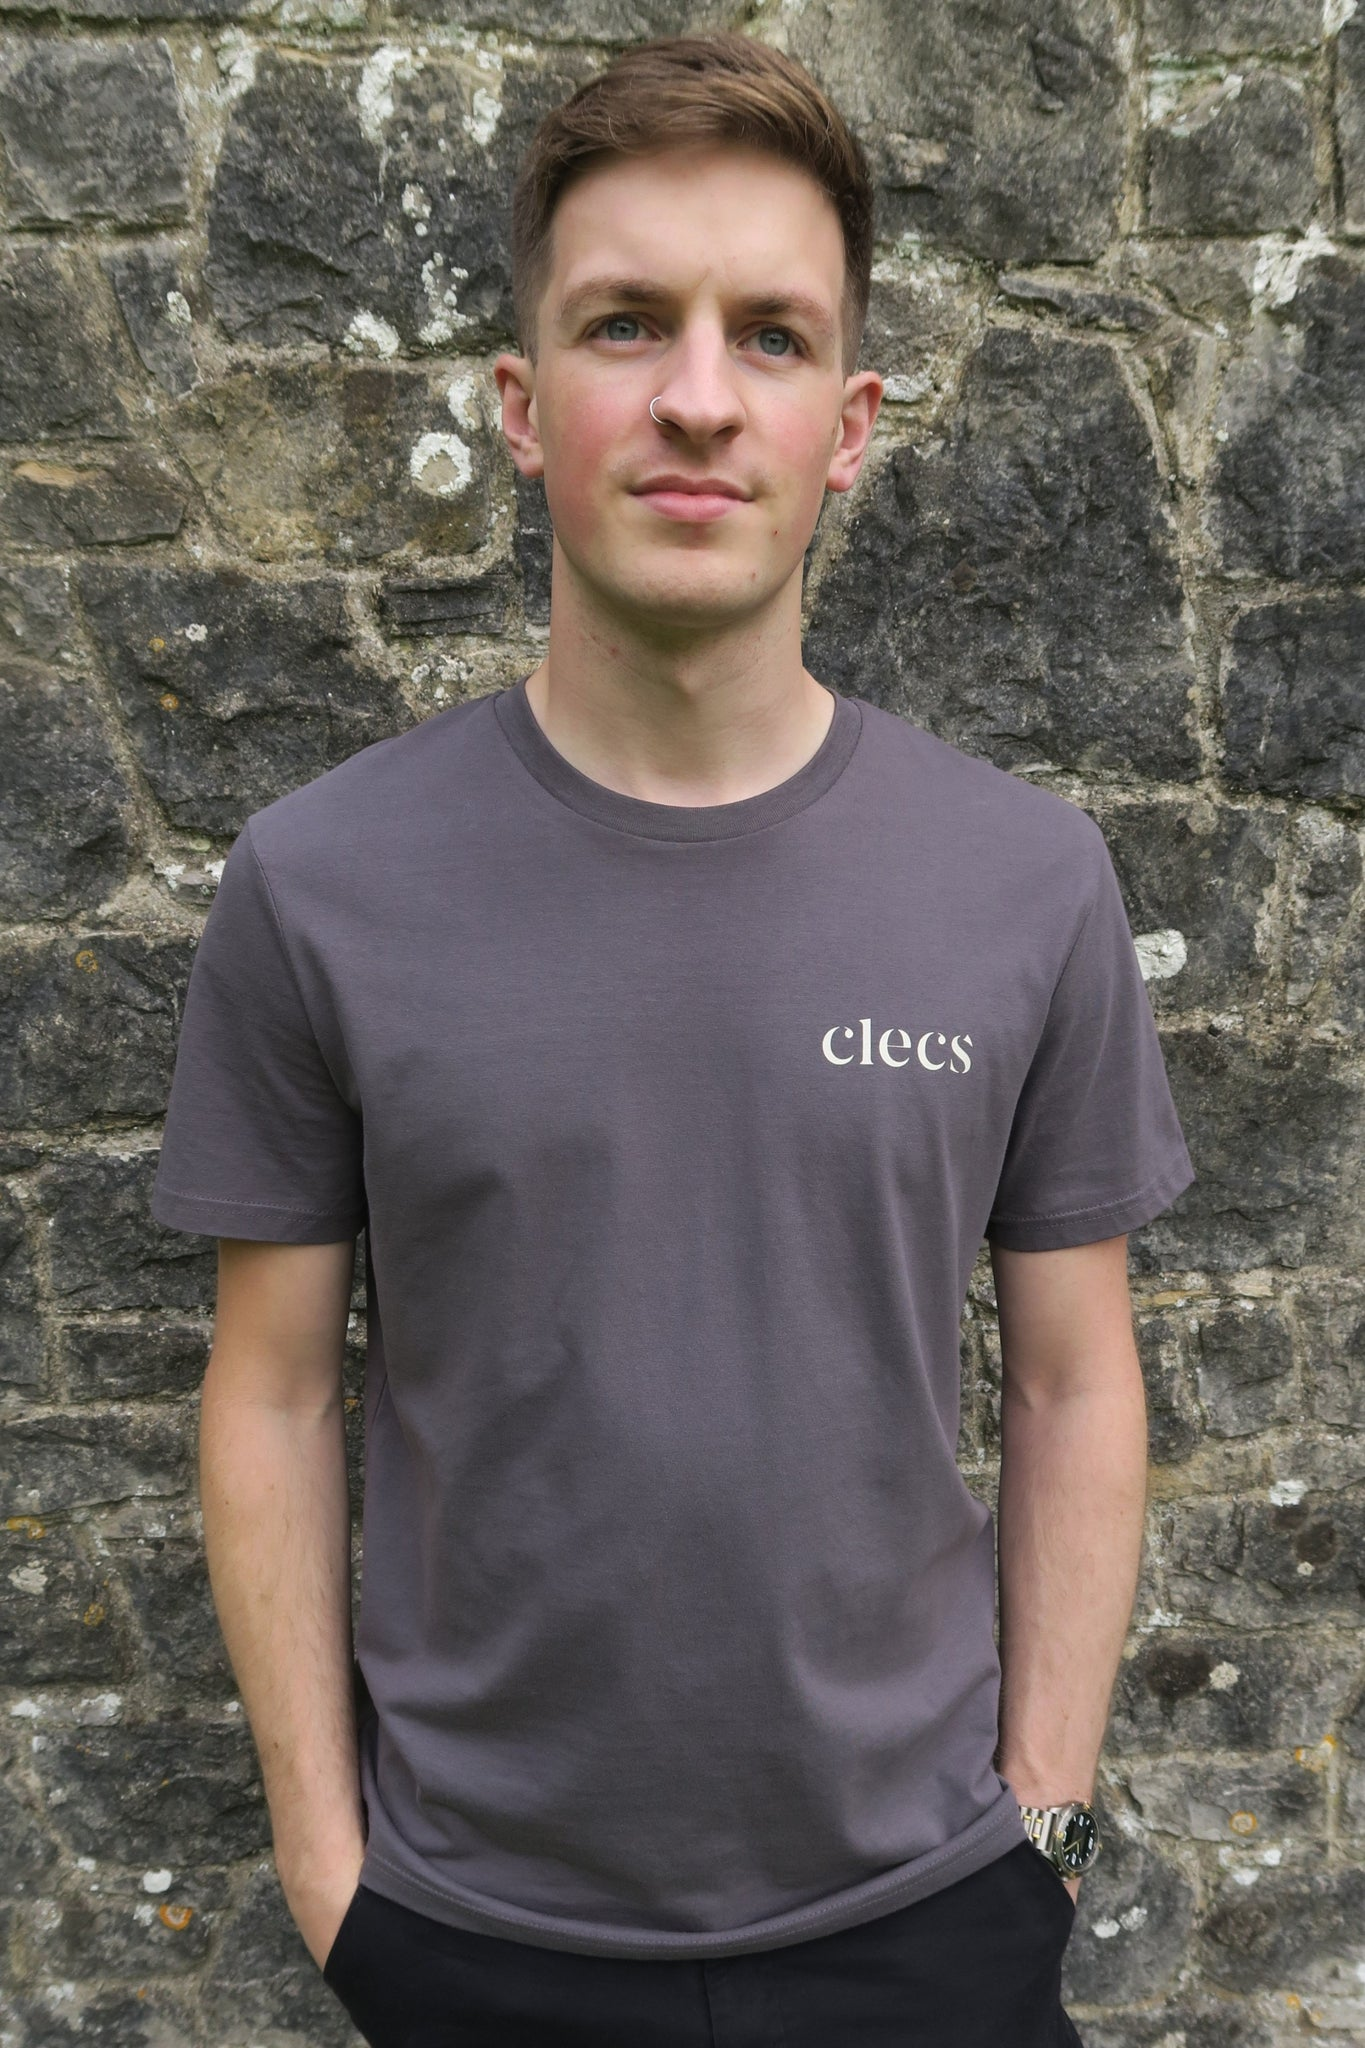 Clecs T-Shirt in Charcoal Grey